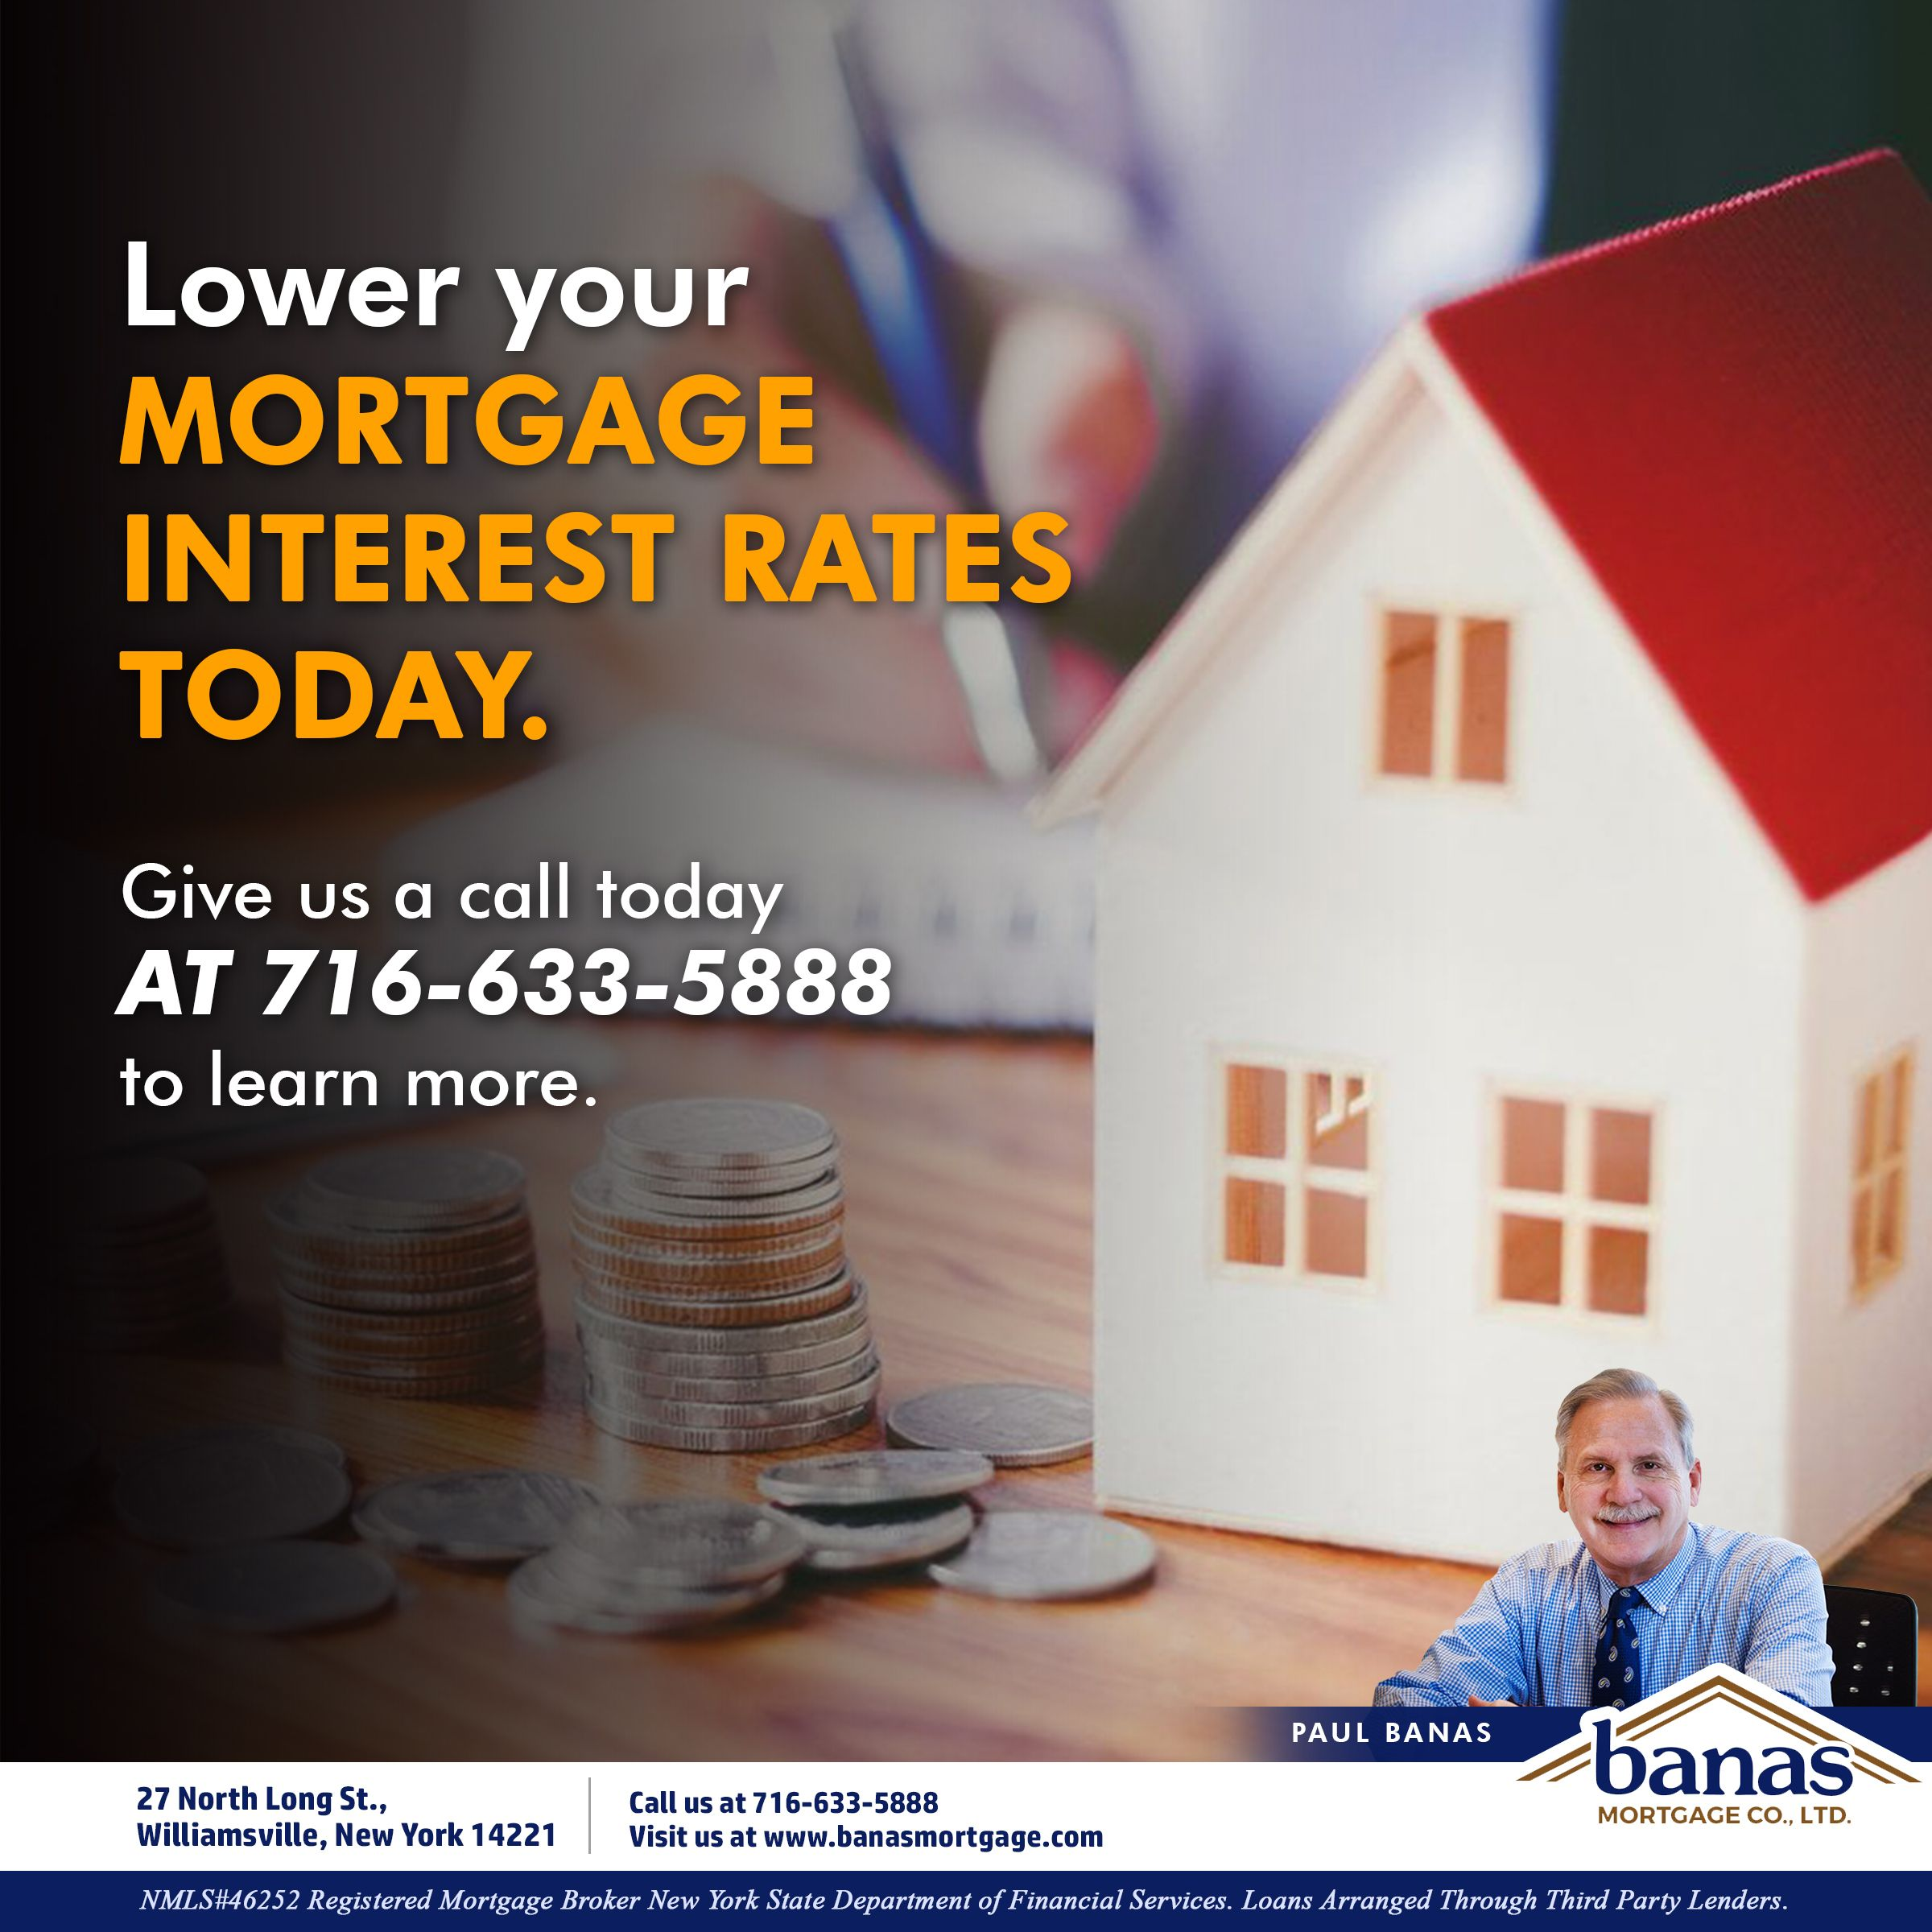 Refinancing Can Lower Interest Rate And You Can Do Just That